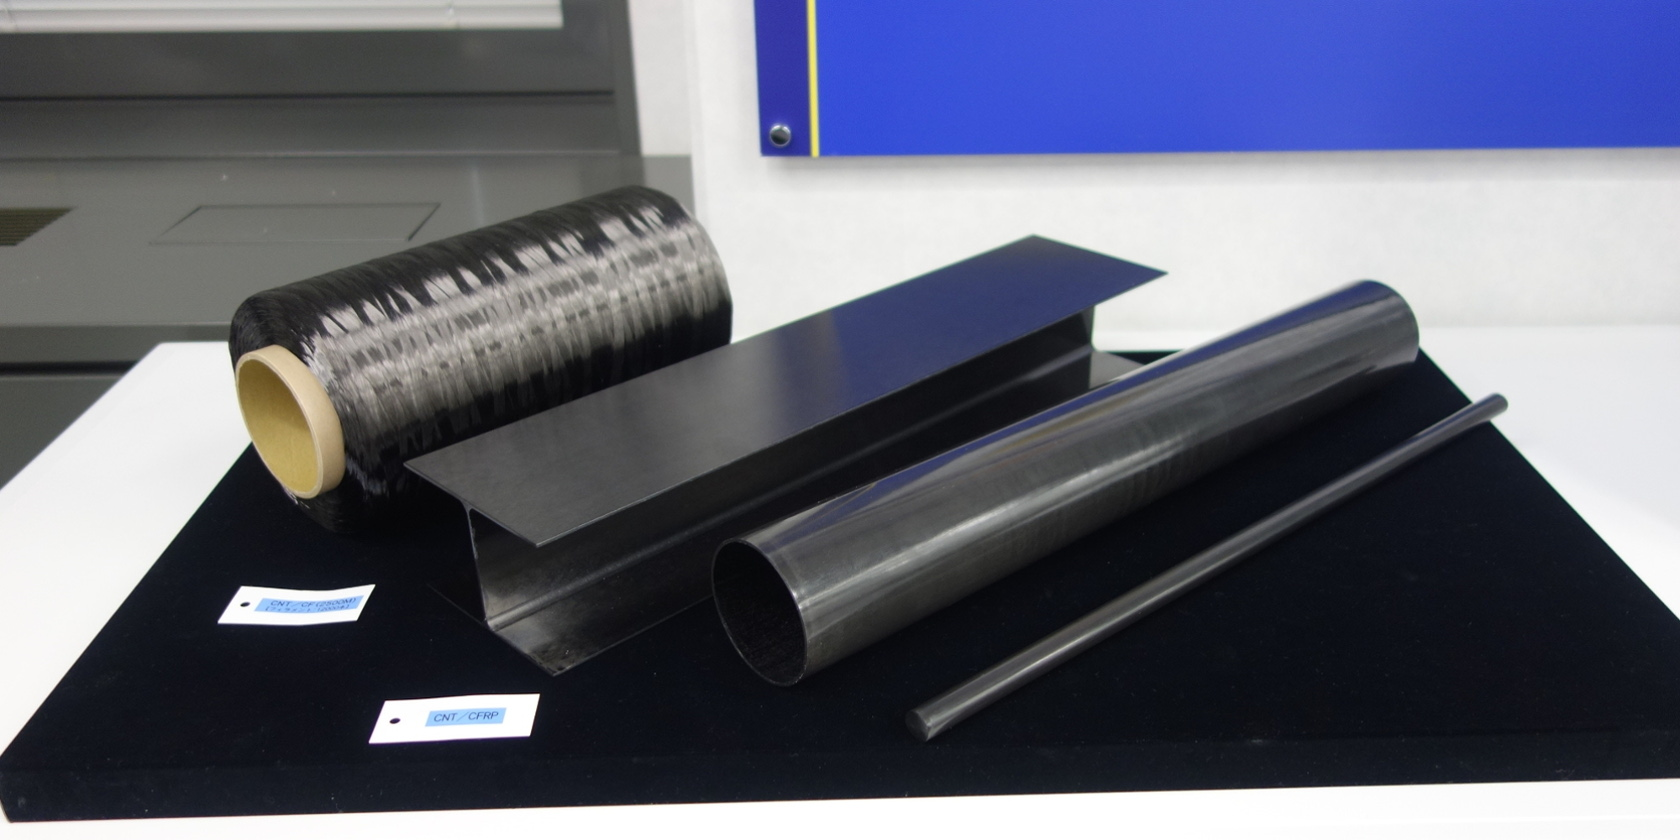 Nitta Aims to Commercialize CNT/CF Composite Within Two to Three Years